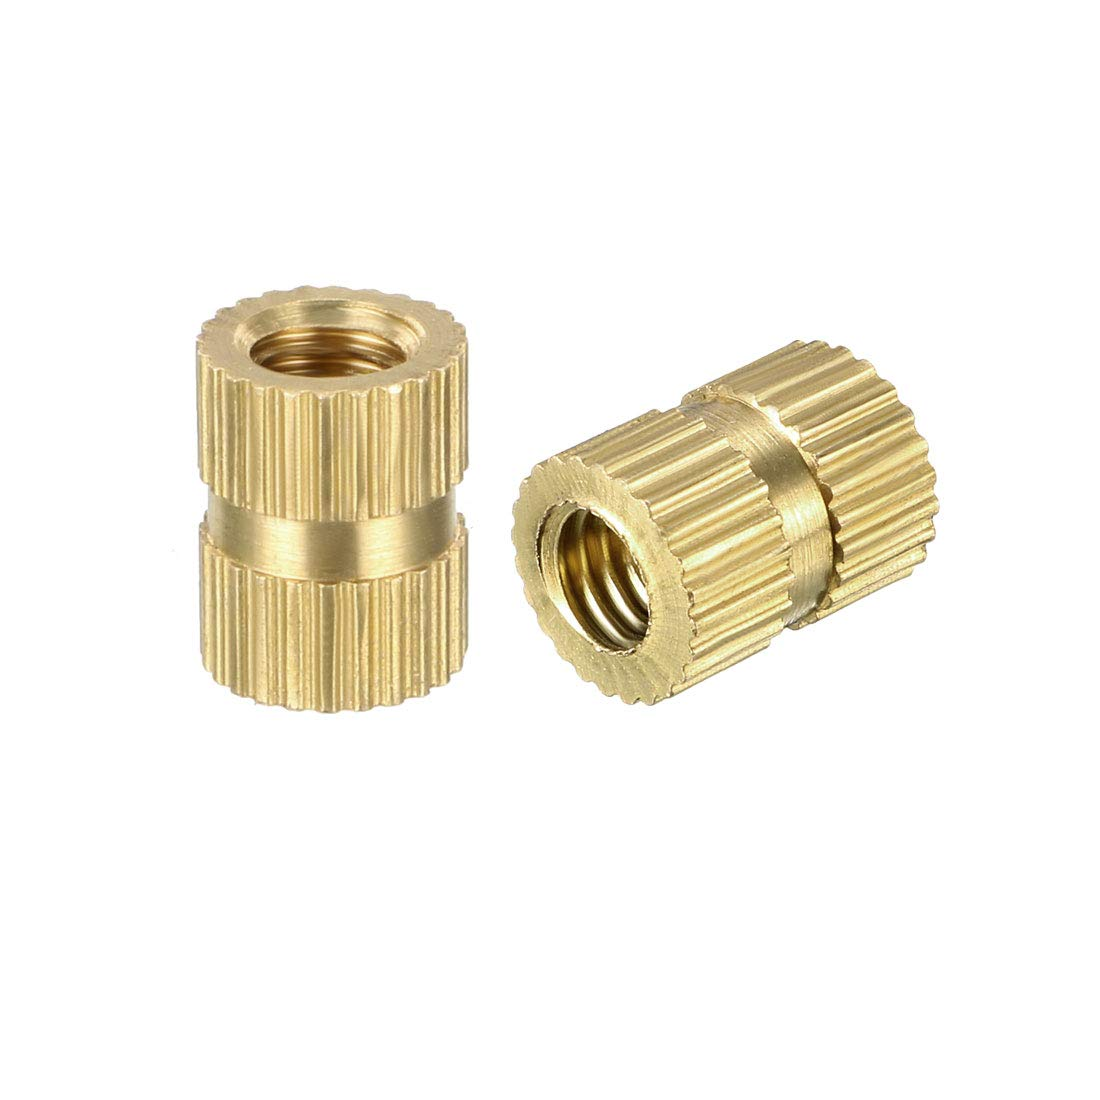 x 5.4mm L Female Thread Brass Embedment Nuts sourcing map Knurled Threaded Insert Pack of 150 OD M3 x 5mm